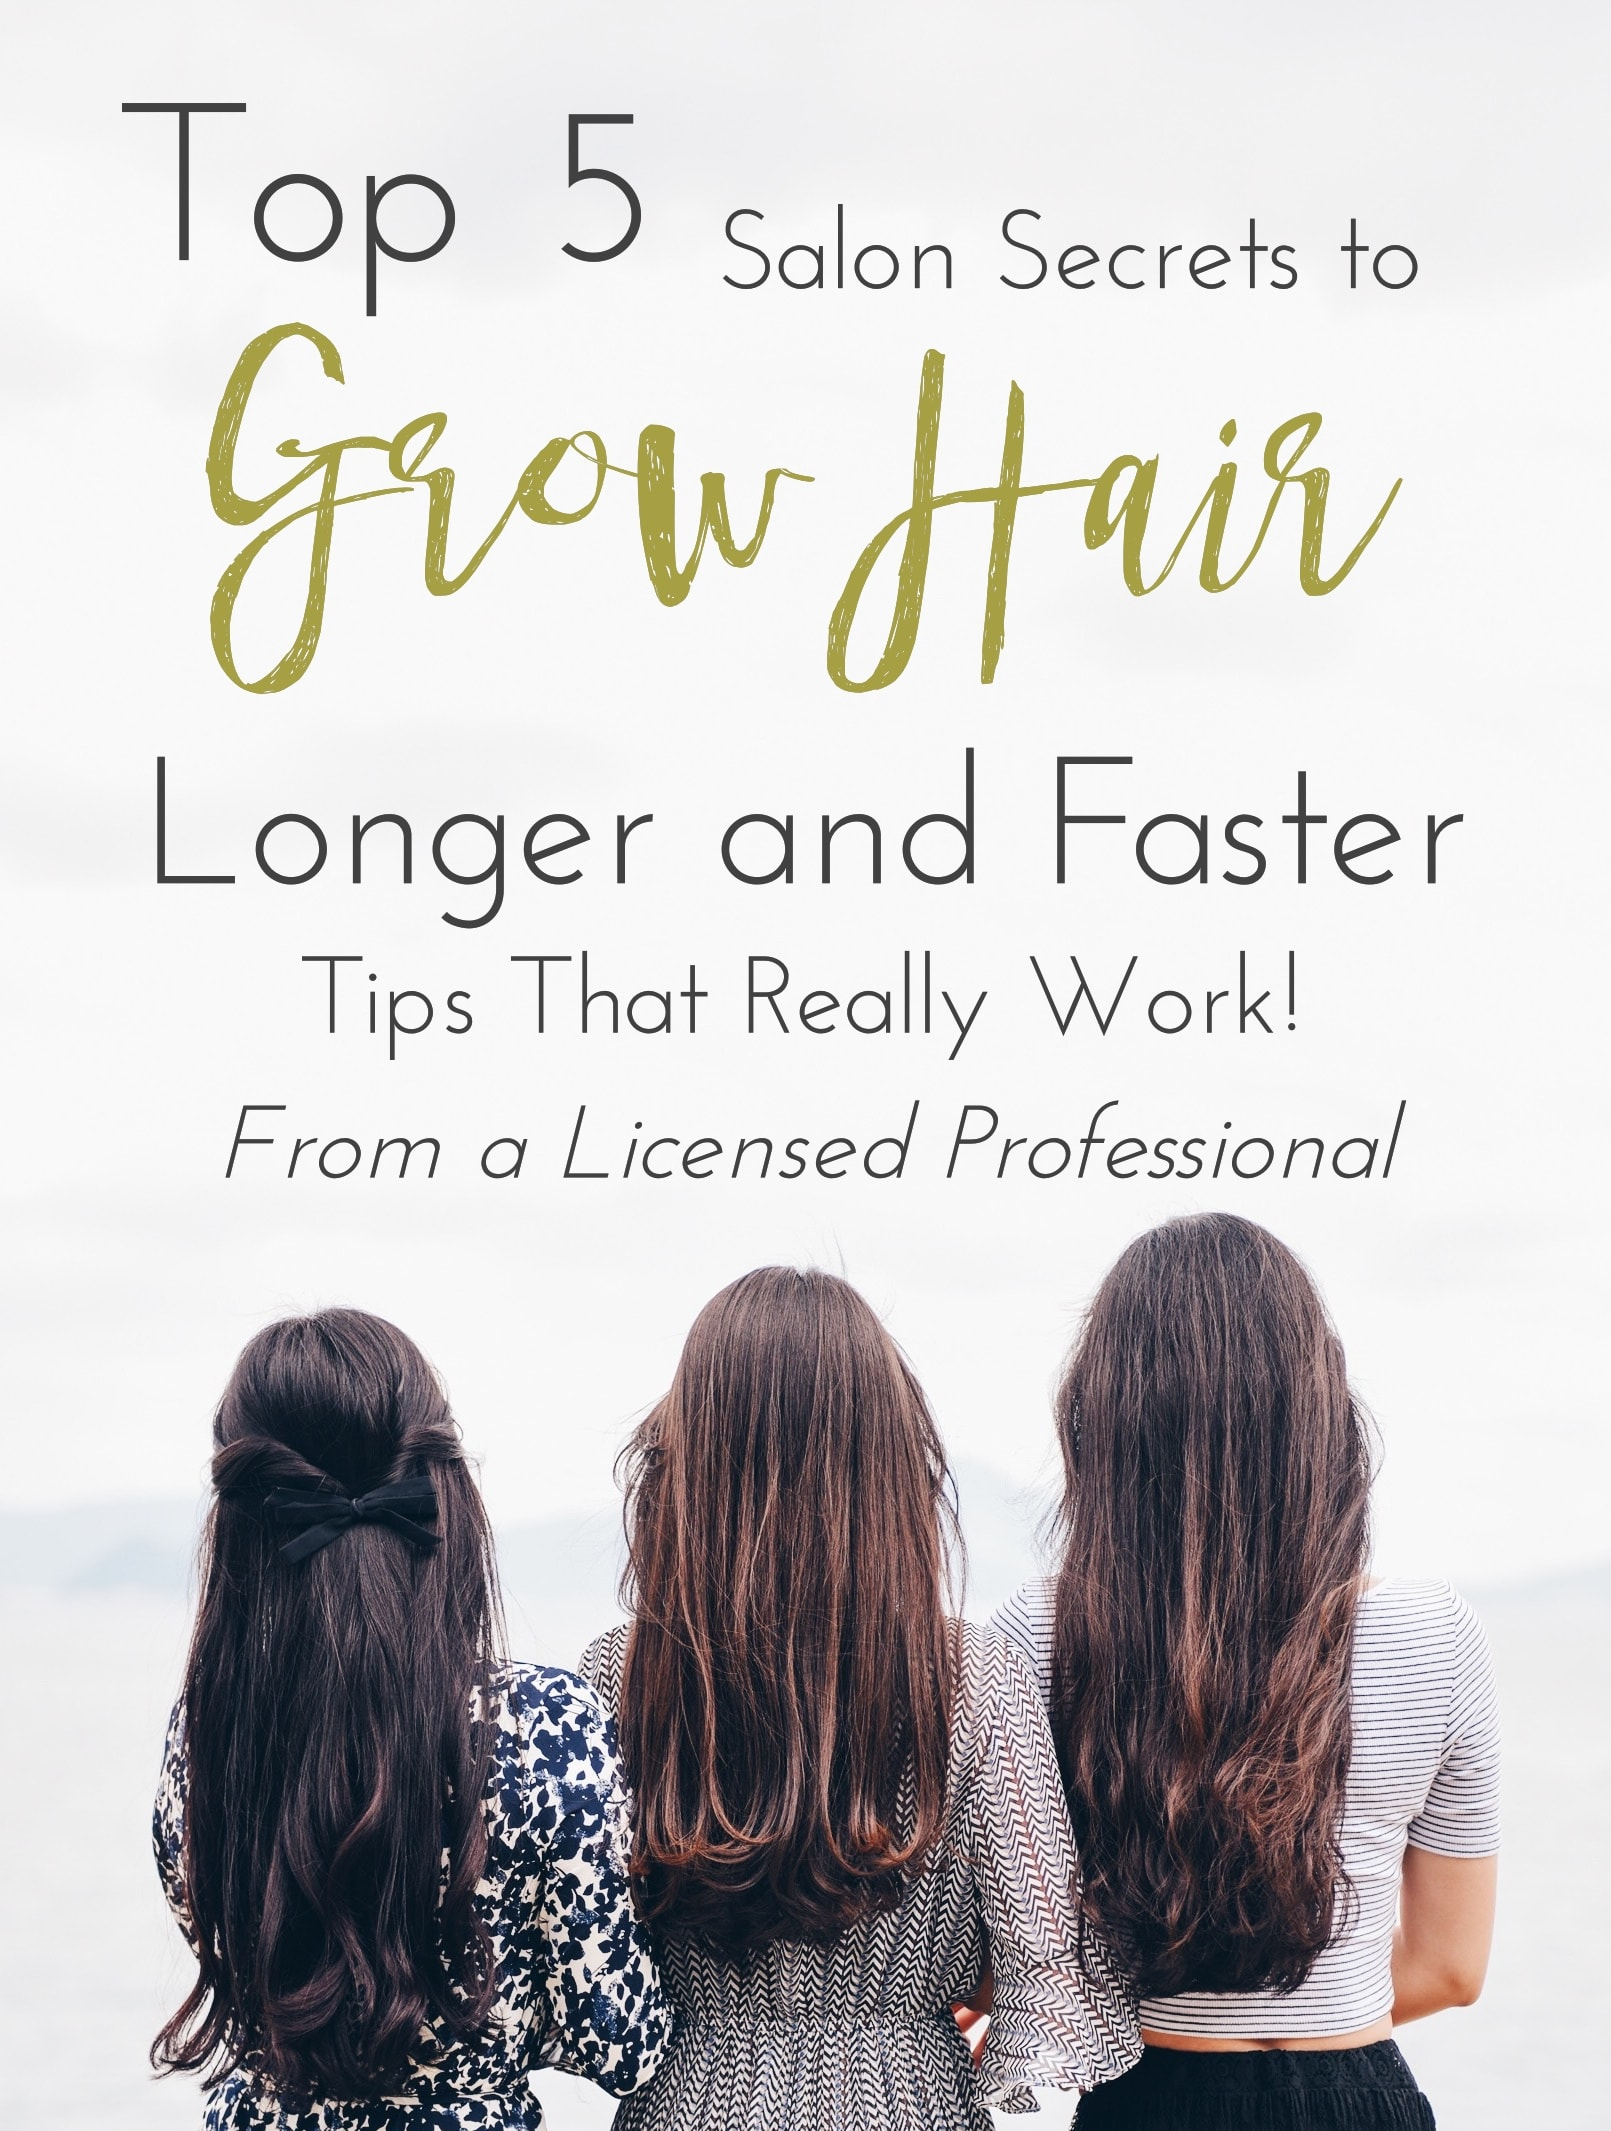 Top 5 Salon Secrets to Grow Your Hair Longer and Faster! Tips that actually work From a Licensed Professional.